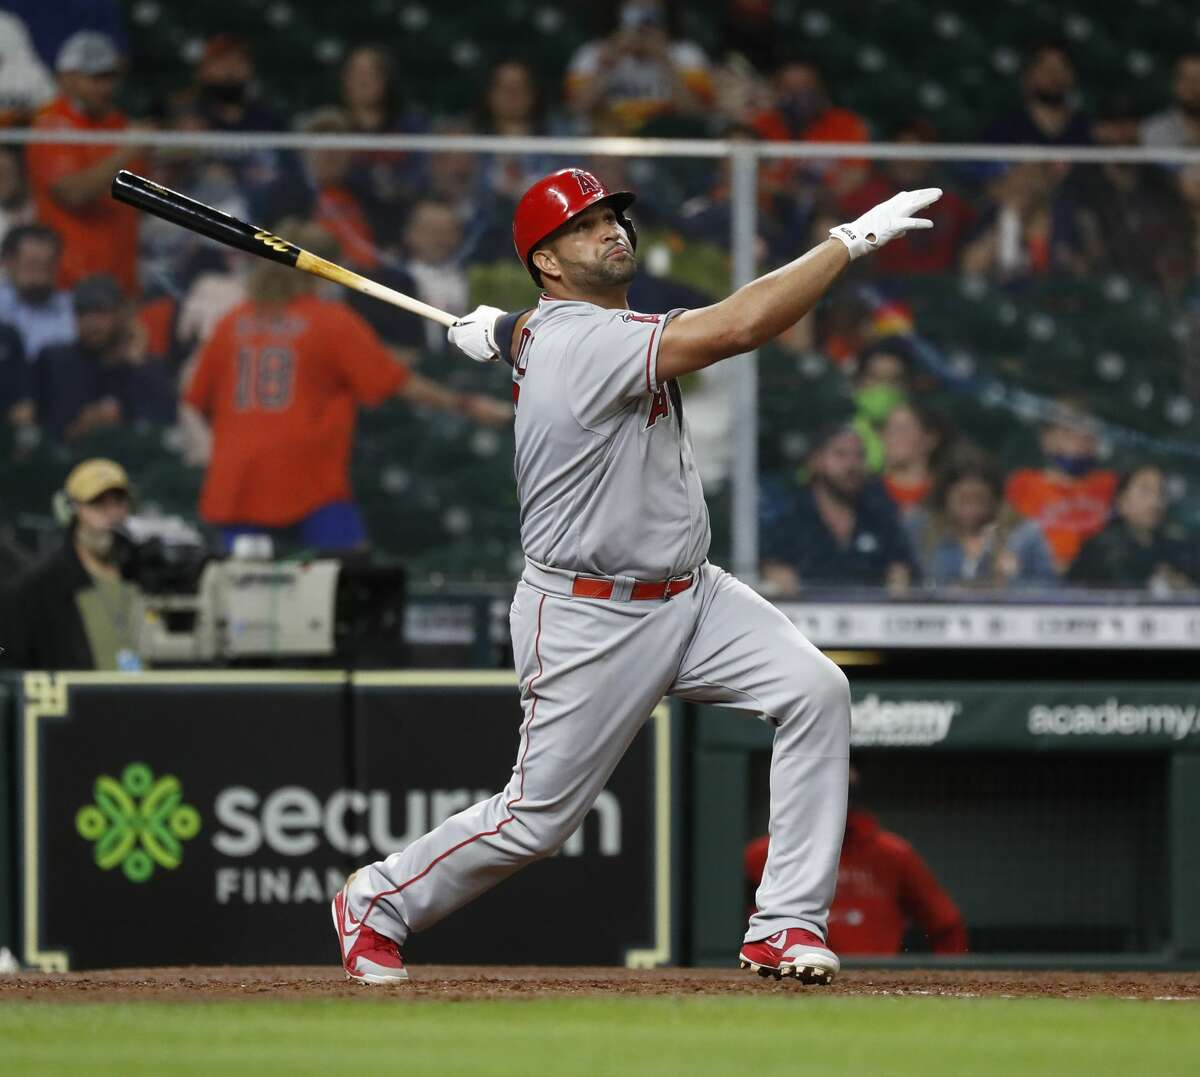 Los Angeles Angels Albert Pujols (5) hits a two-run home run off of Houston Astros pitcher Bryan Abreu during the sixth inning of an MLB baseball game at Minute Maid Park, Thursday, April 22, 2021, in Houston.